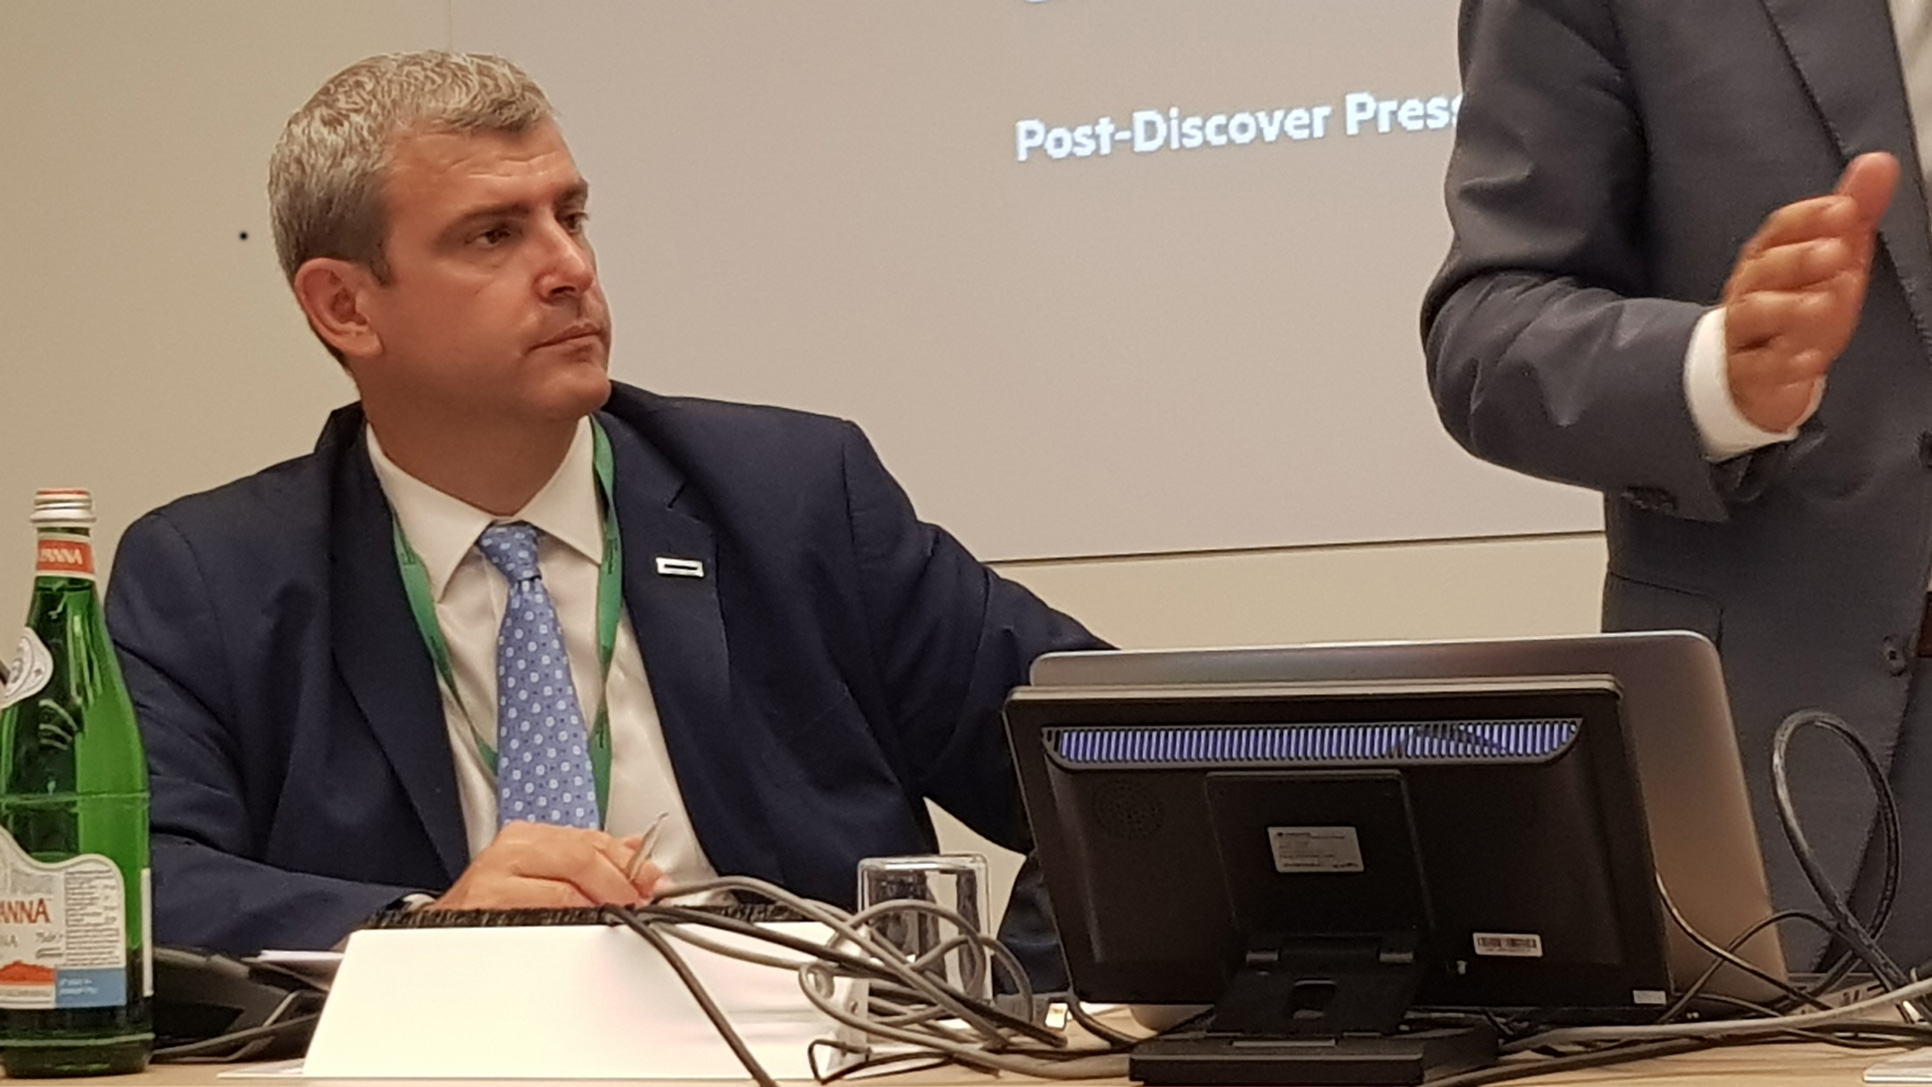 Paolo Delgrosso, Channel, Alliance, OEM & SP Sales Director Manager di Hewlett Packard Enterprise